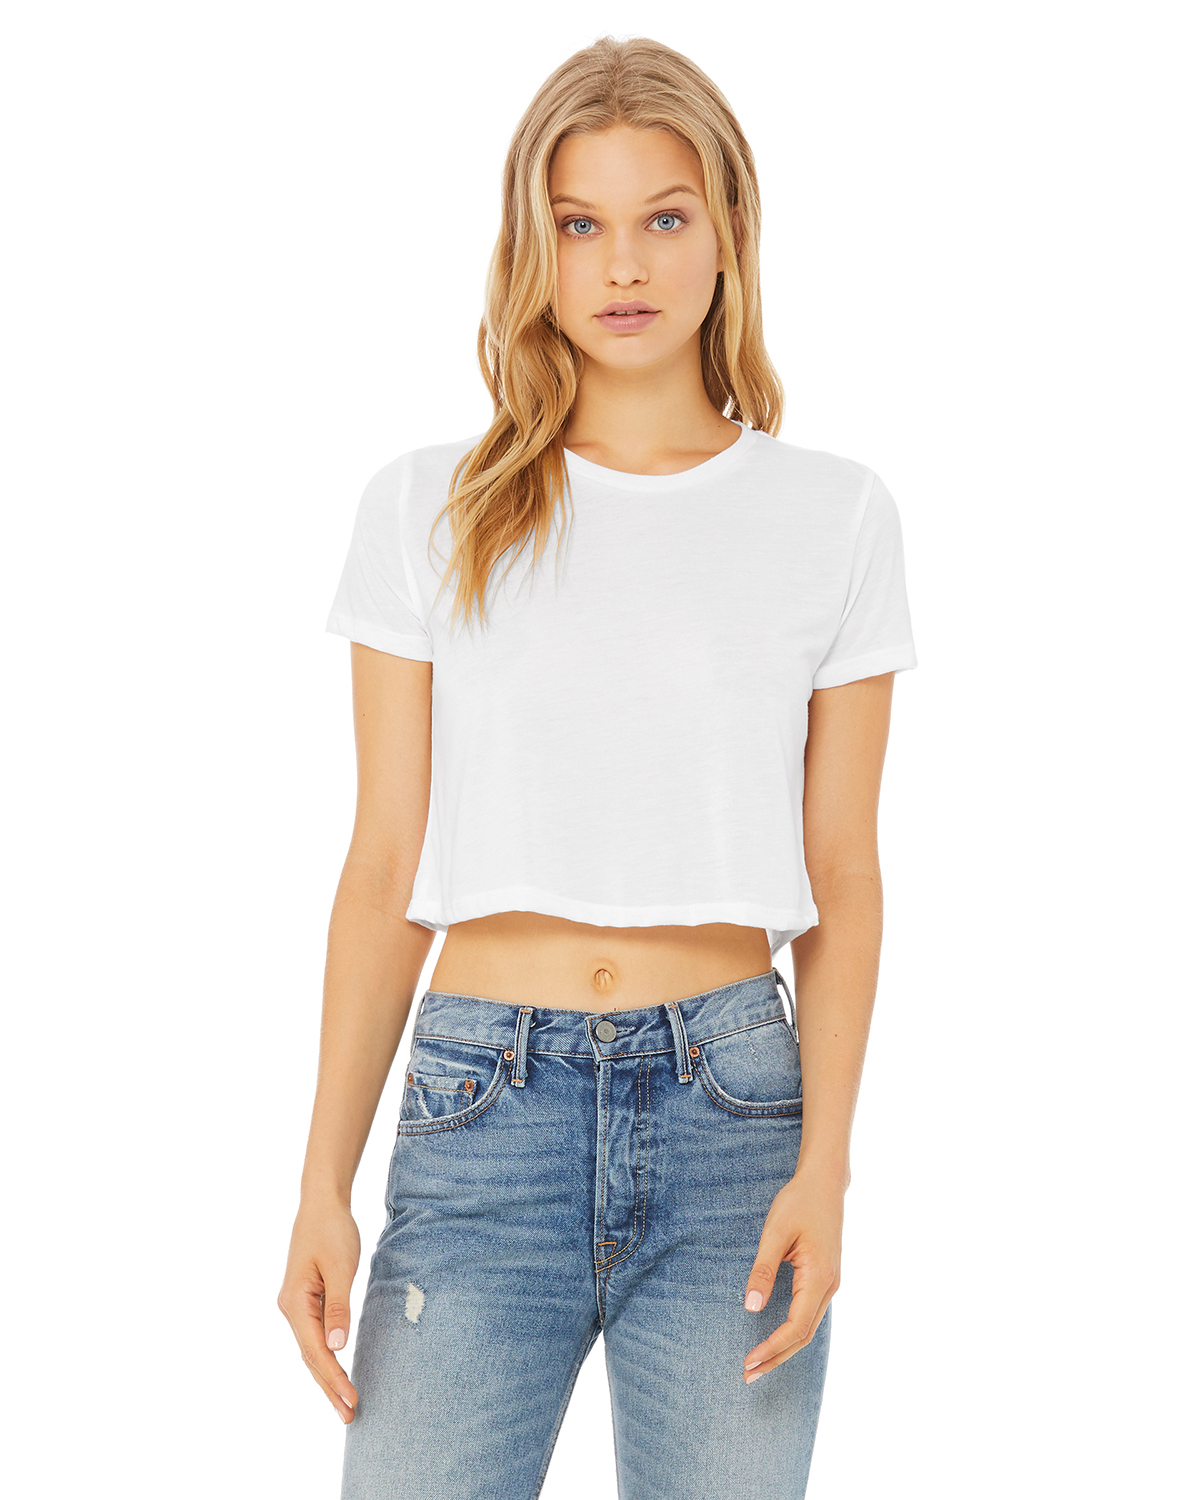 Bella + Canvas 8882 - Women's Flowy Cropped Tee